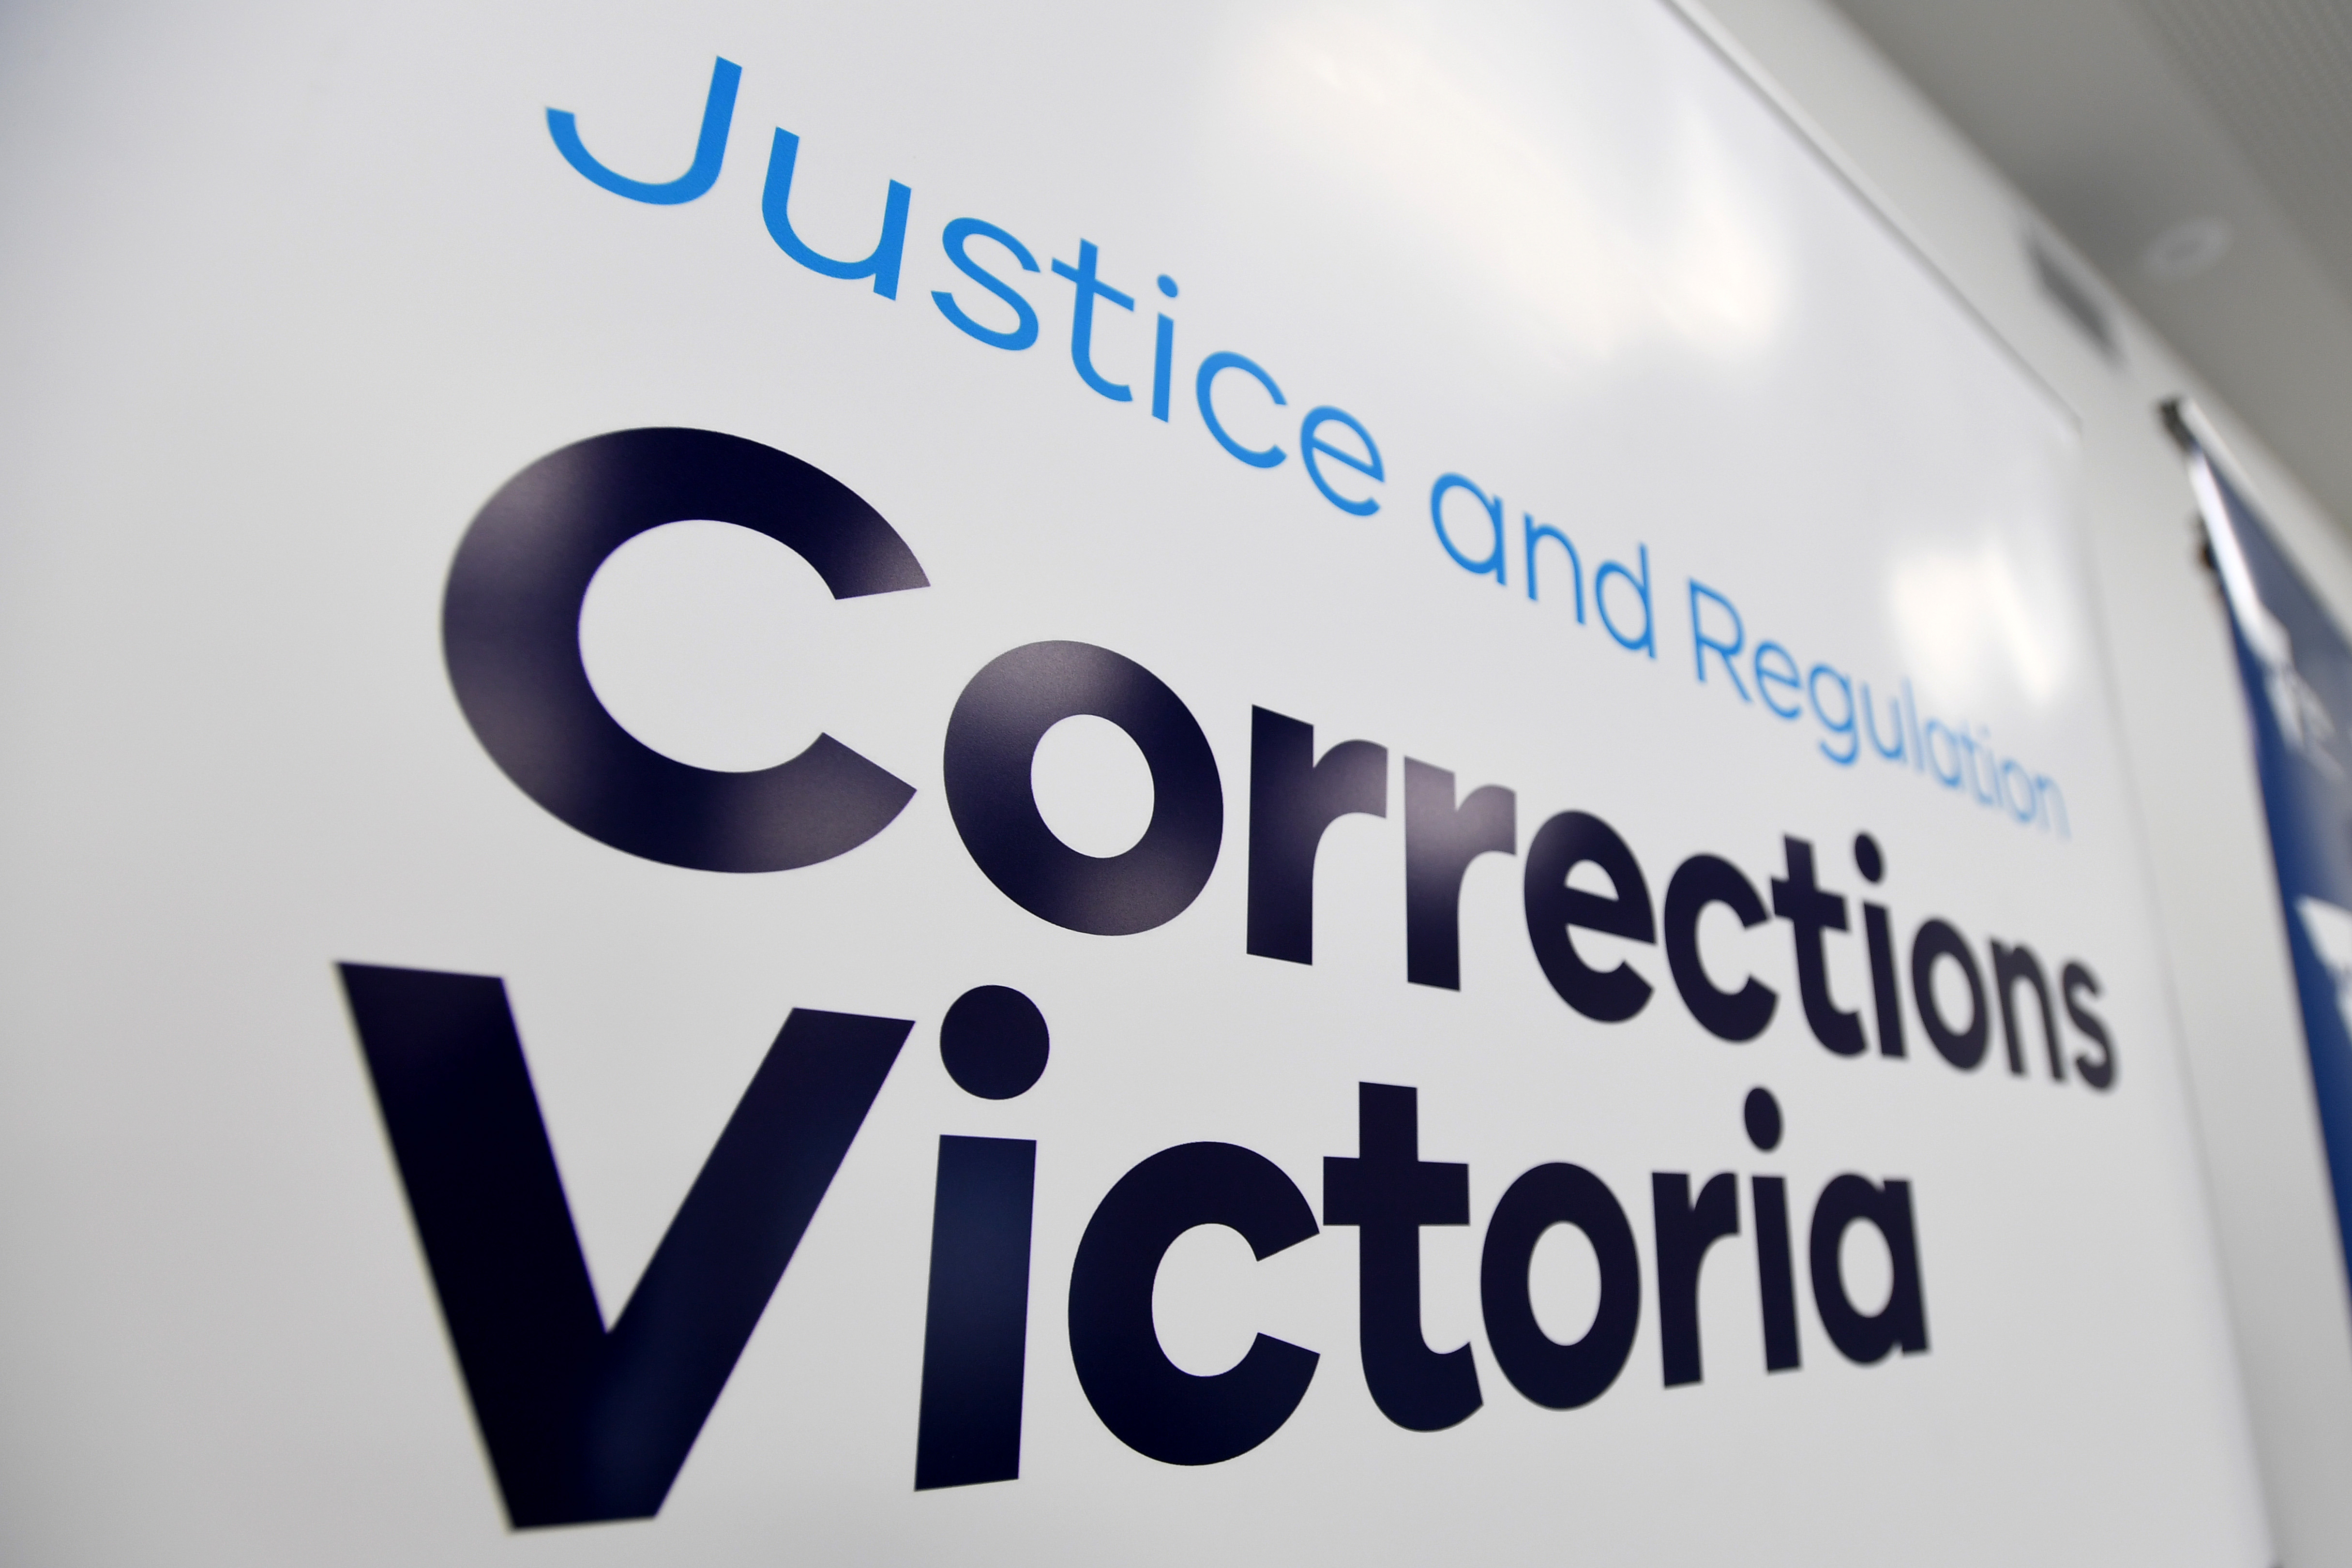 Article image for Corrections Victoria under fire after accused terrorist misses court date